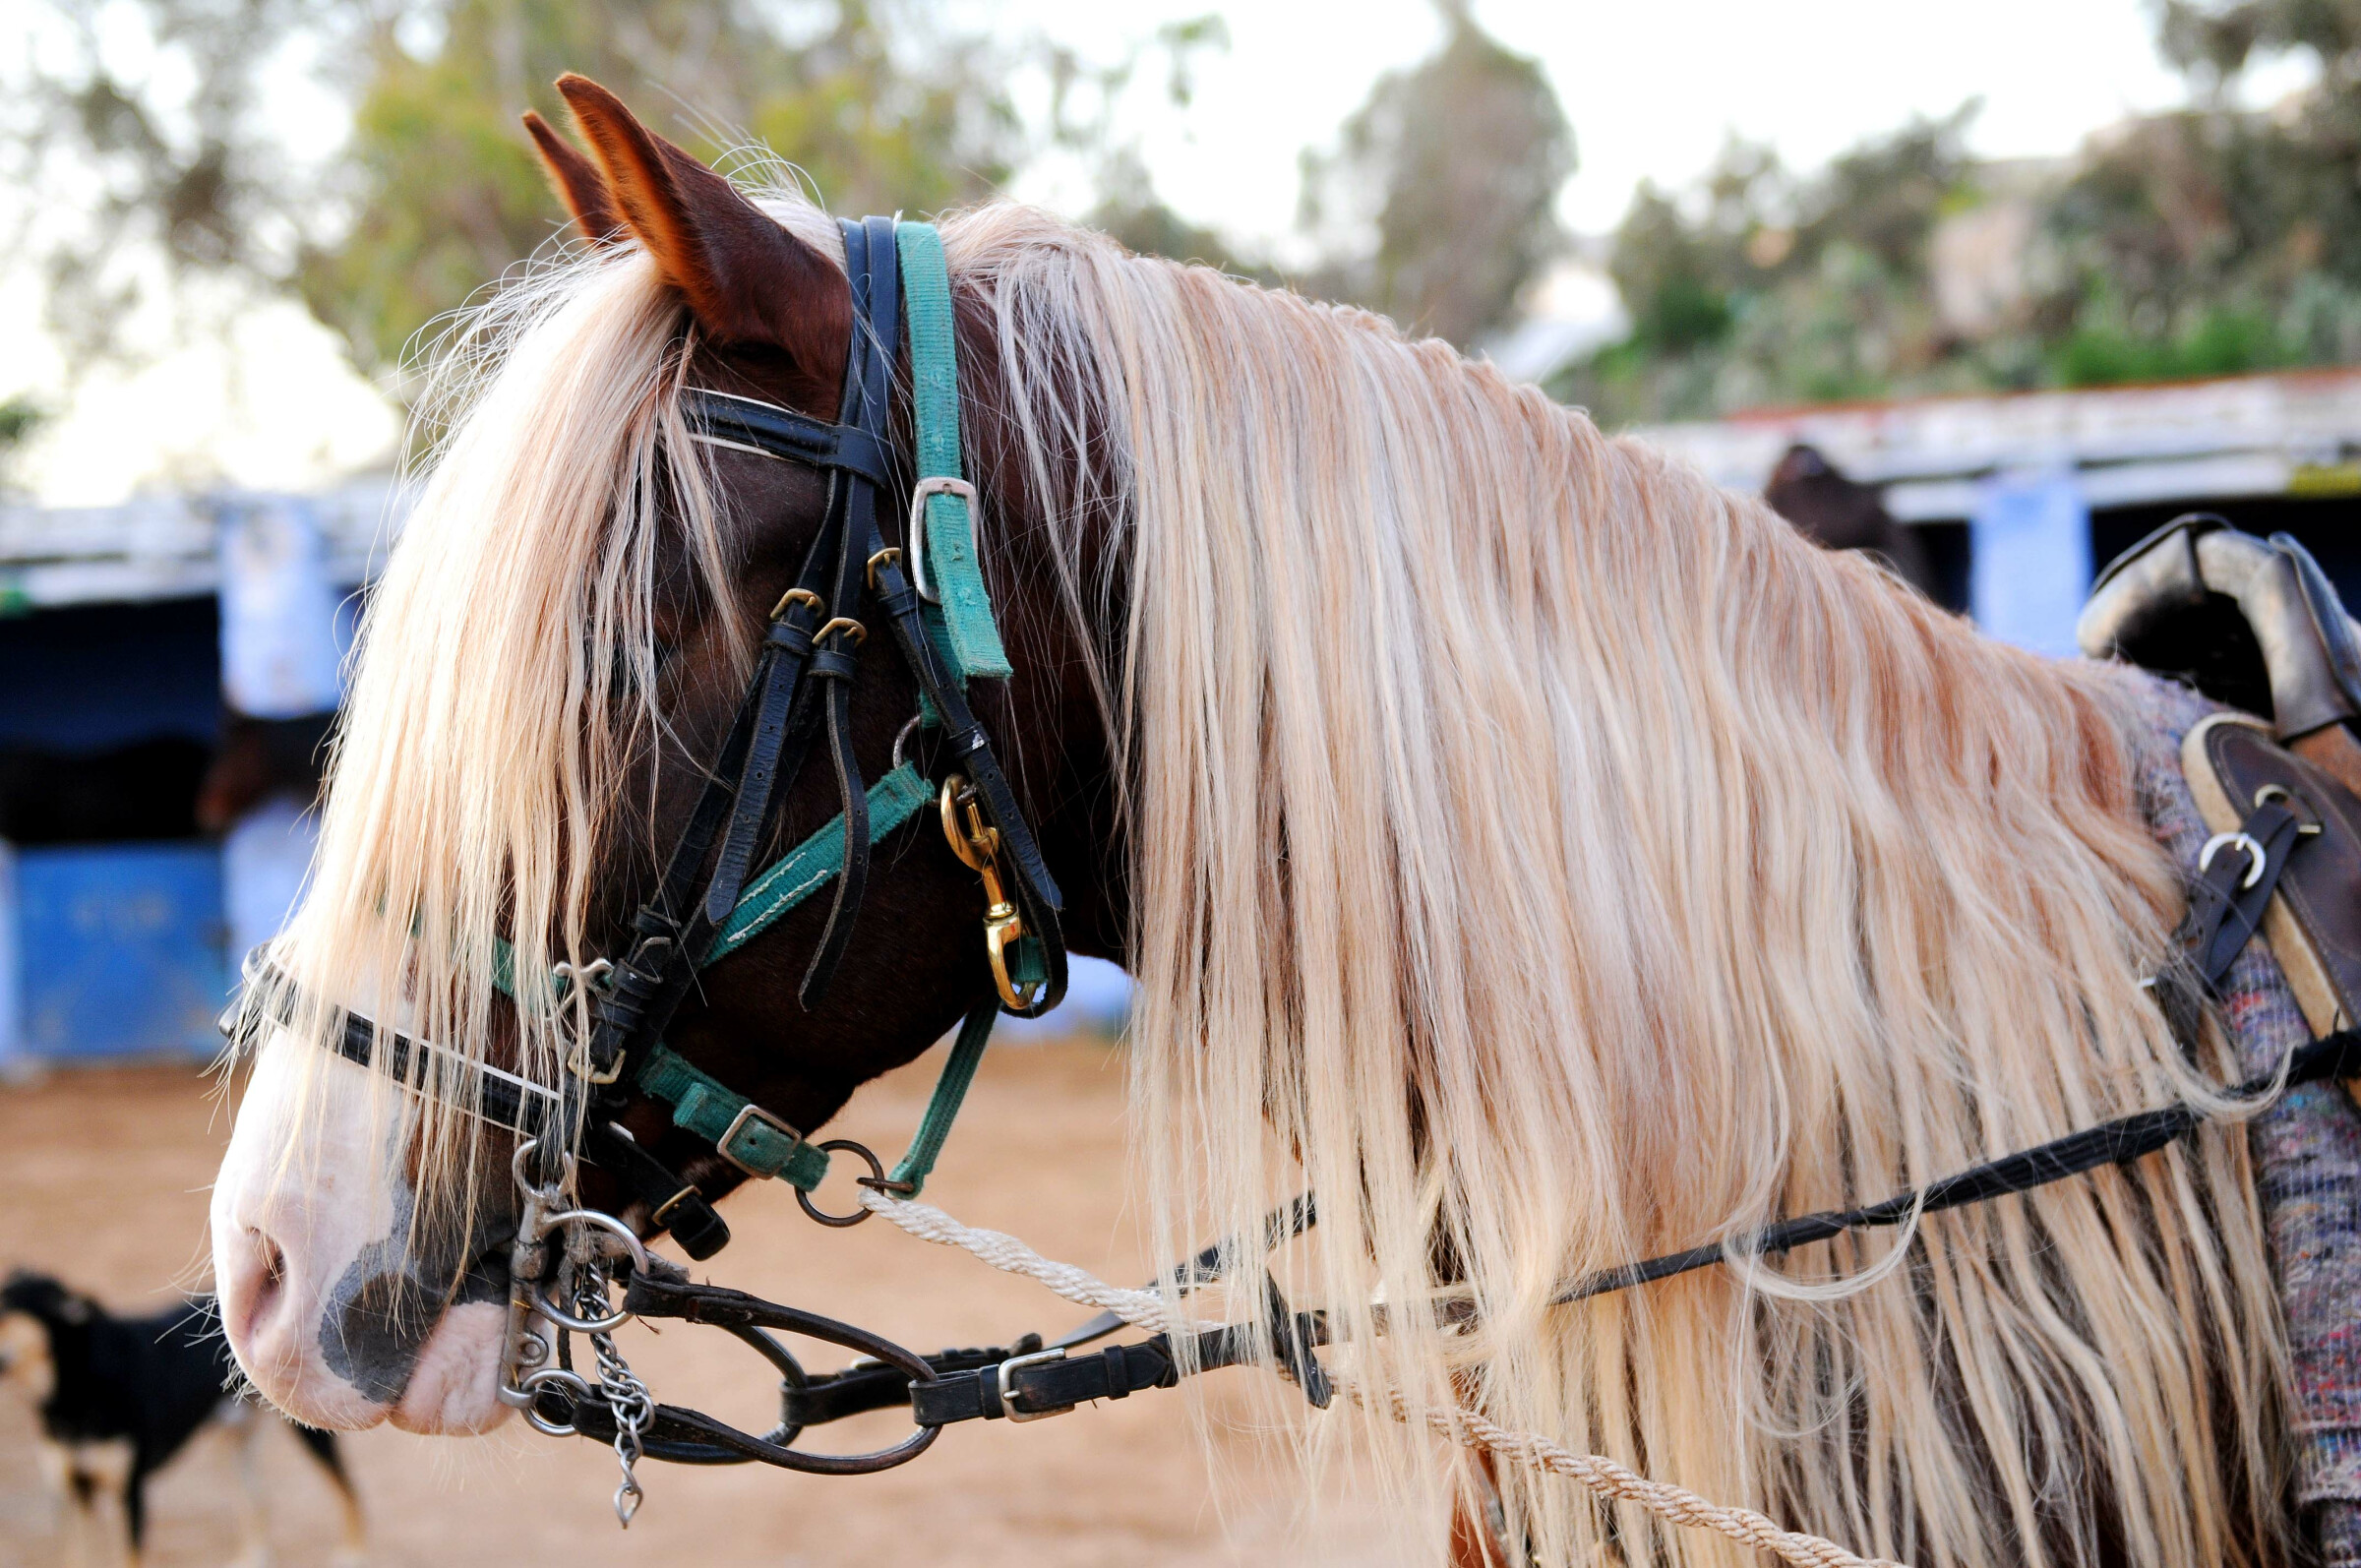 The Arab Berber horse: from antiquity to today